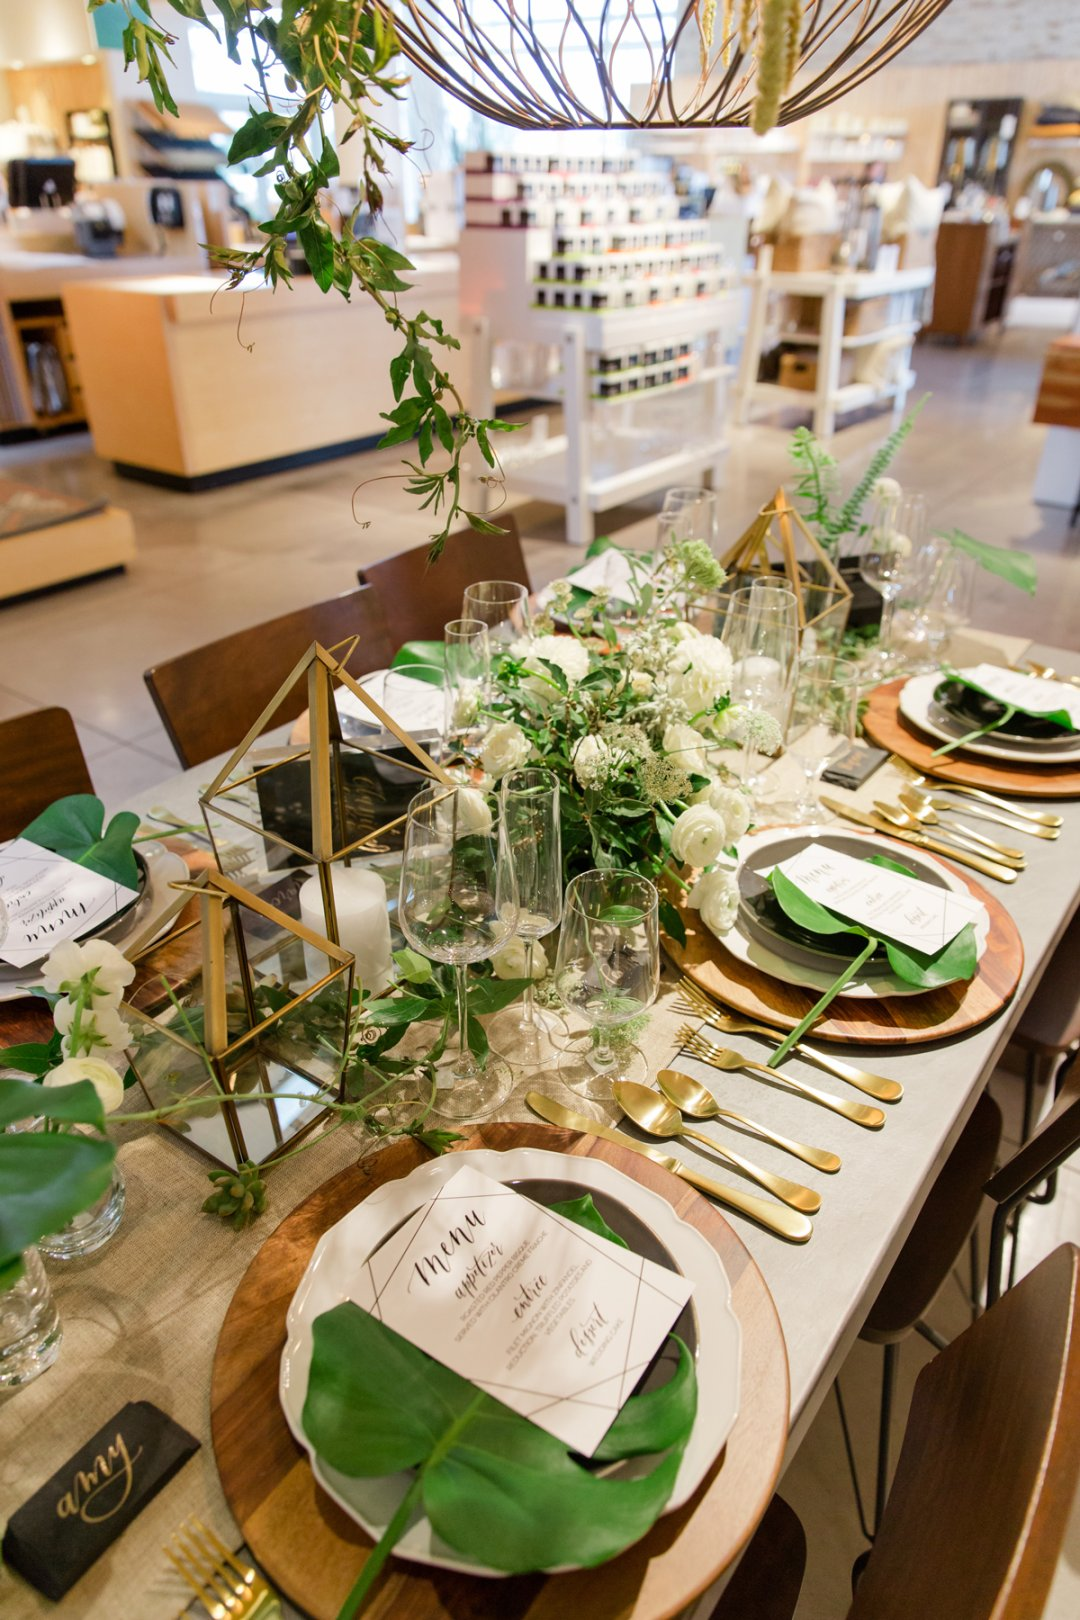 Bird's eye view of green tablescape